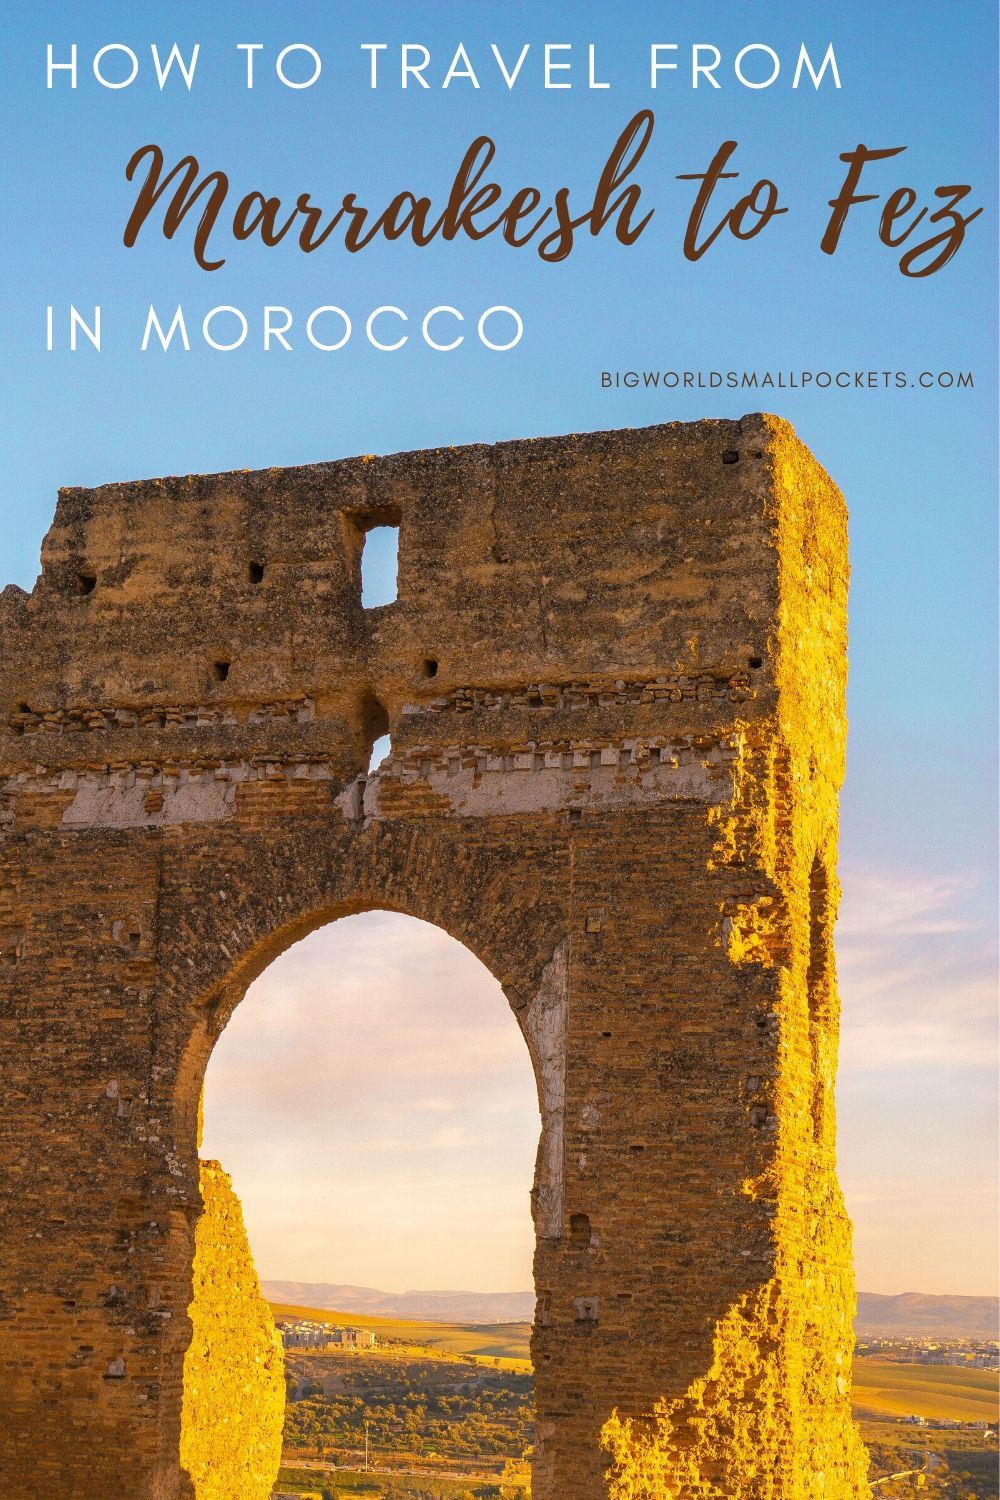 How to Travel From Marrakesh to Fez in Morocco